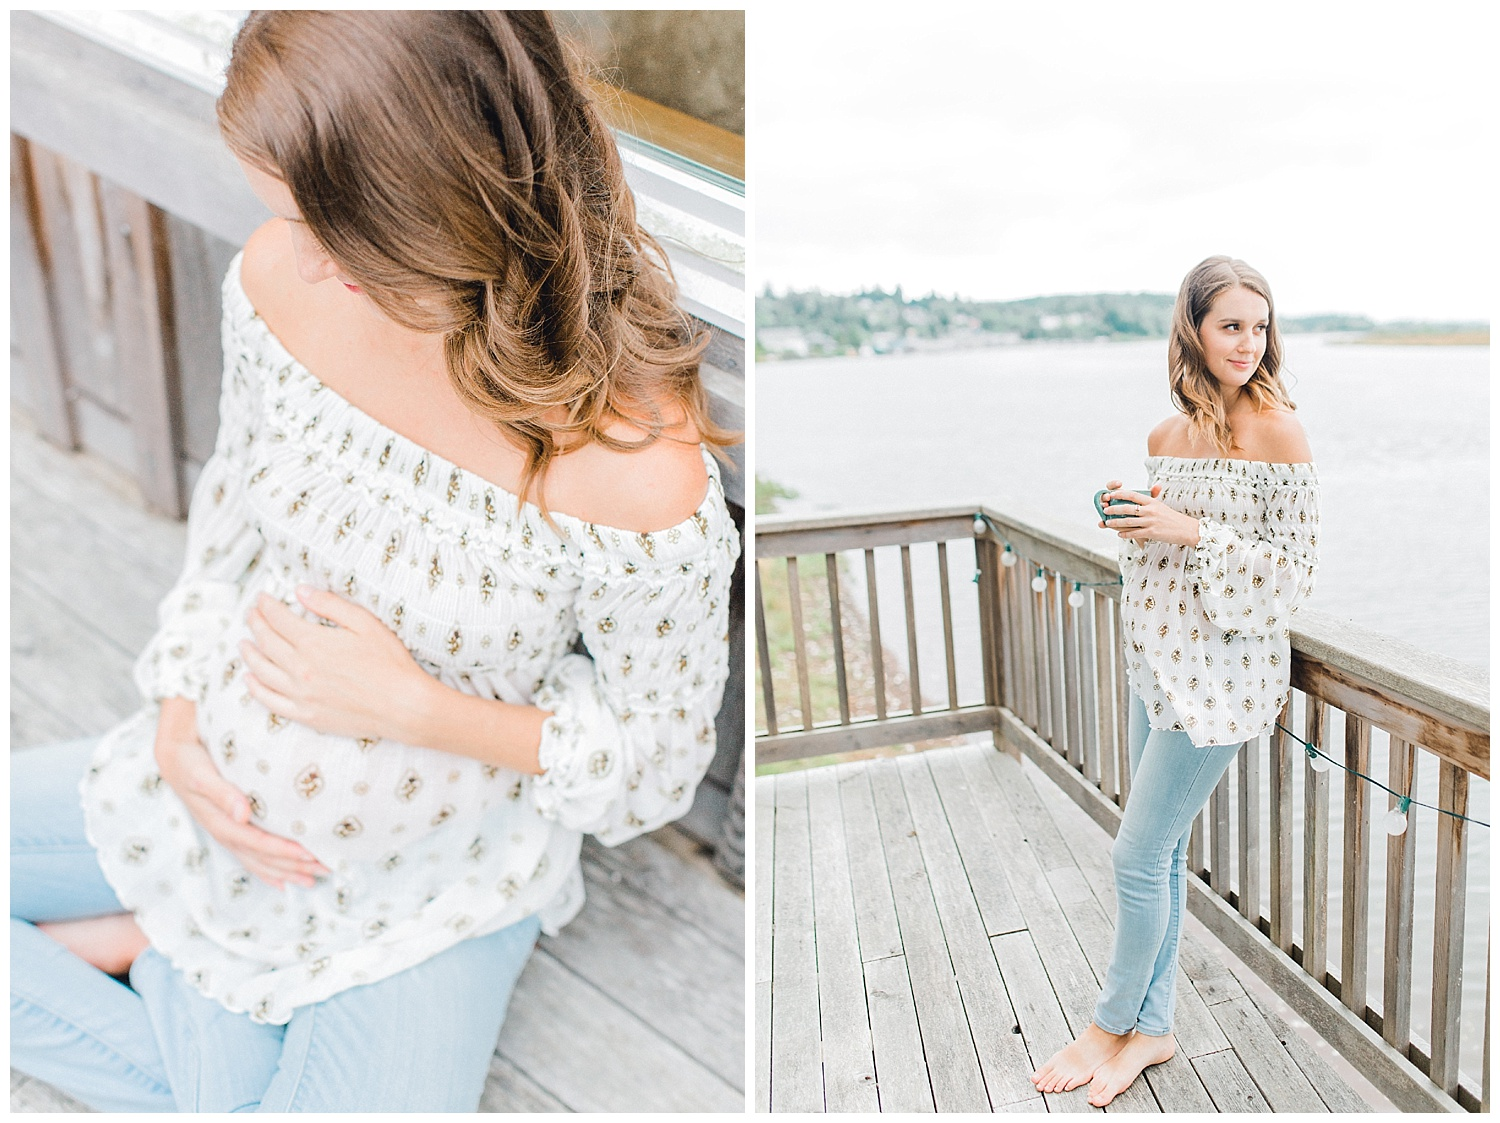 The Most Perfect In Home Maternity Lifestyle Photo Session | Pregnancy Goals | Emma Rose Company Seattle and Portland Wedding and Potrait Photographer | Dream Chasers Workshop_0006.jpg